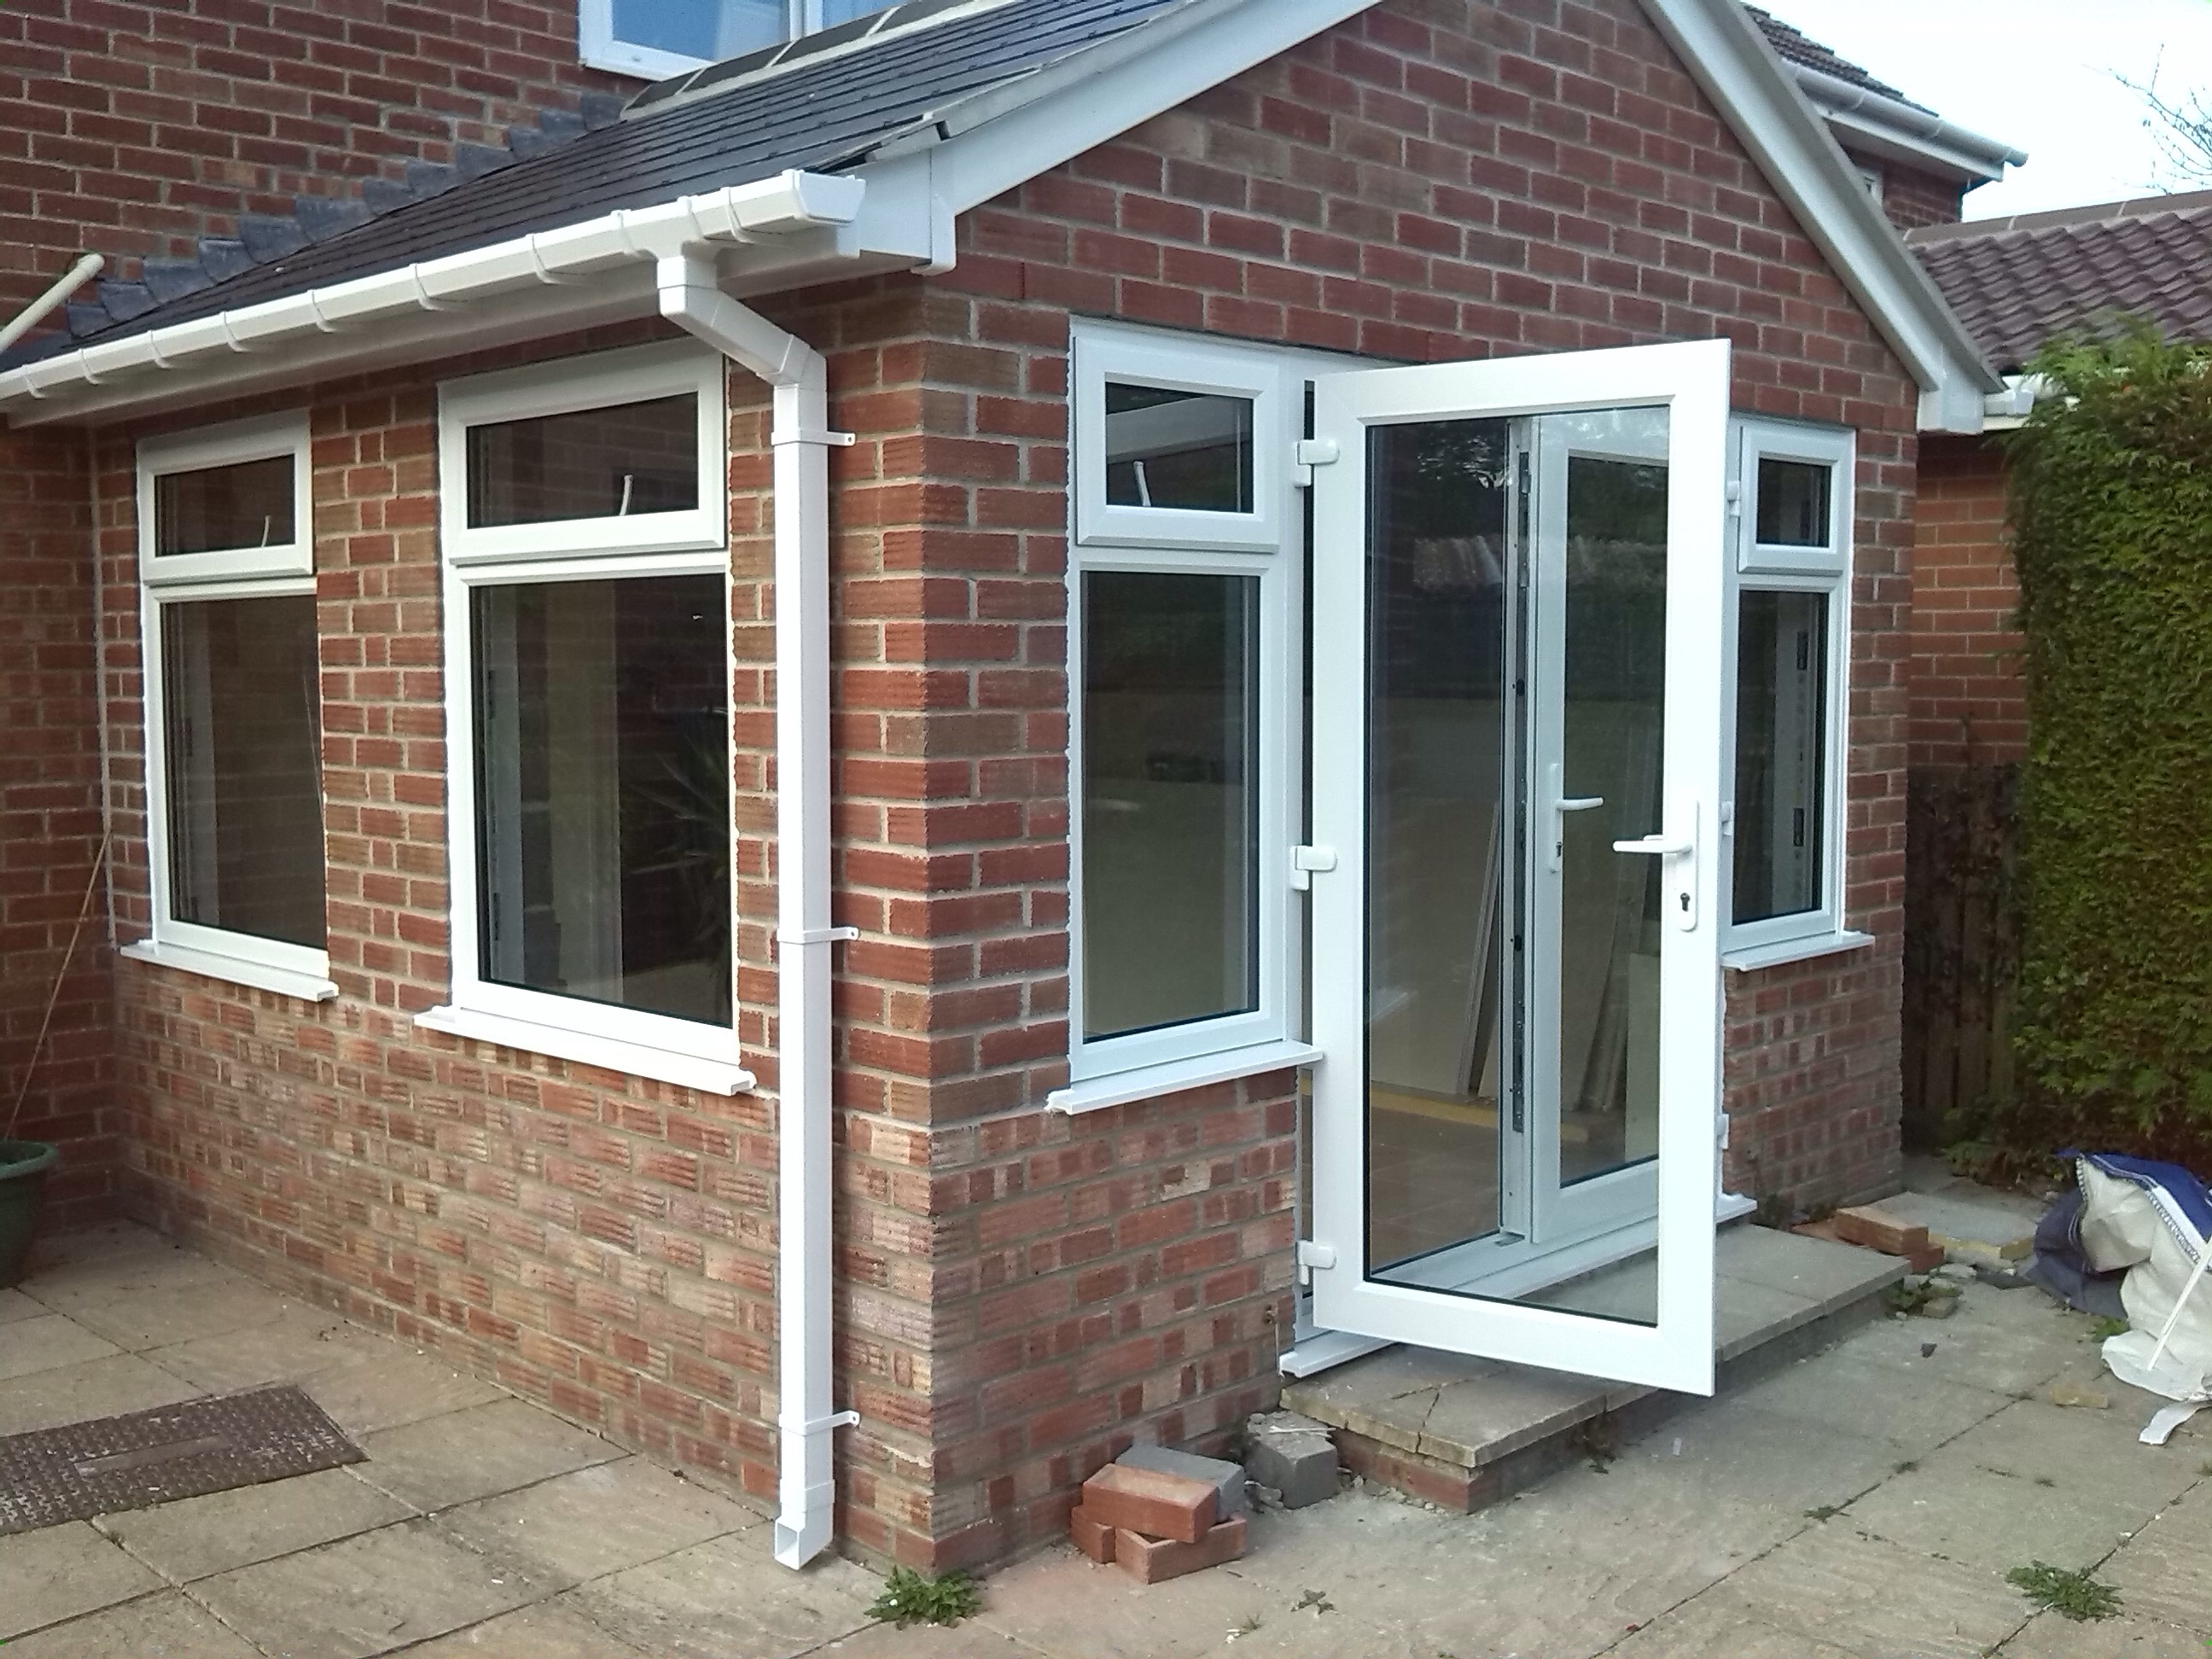 New upvc windows and doors in an extension in broadmayne for New windows and doors